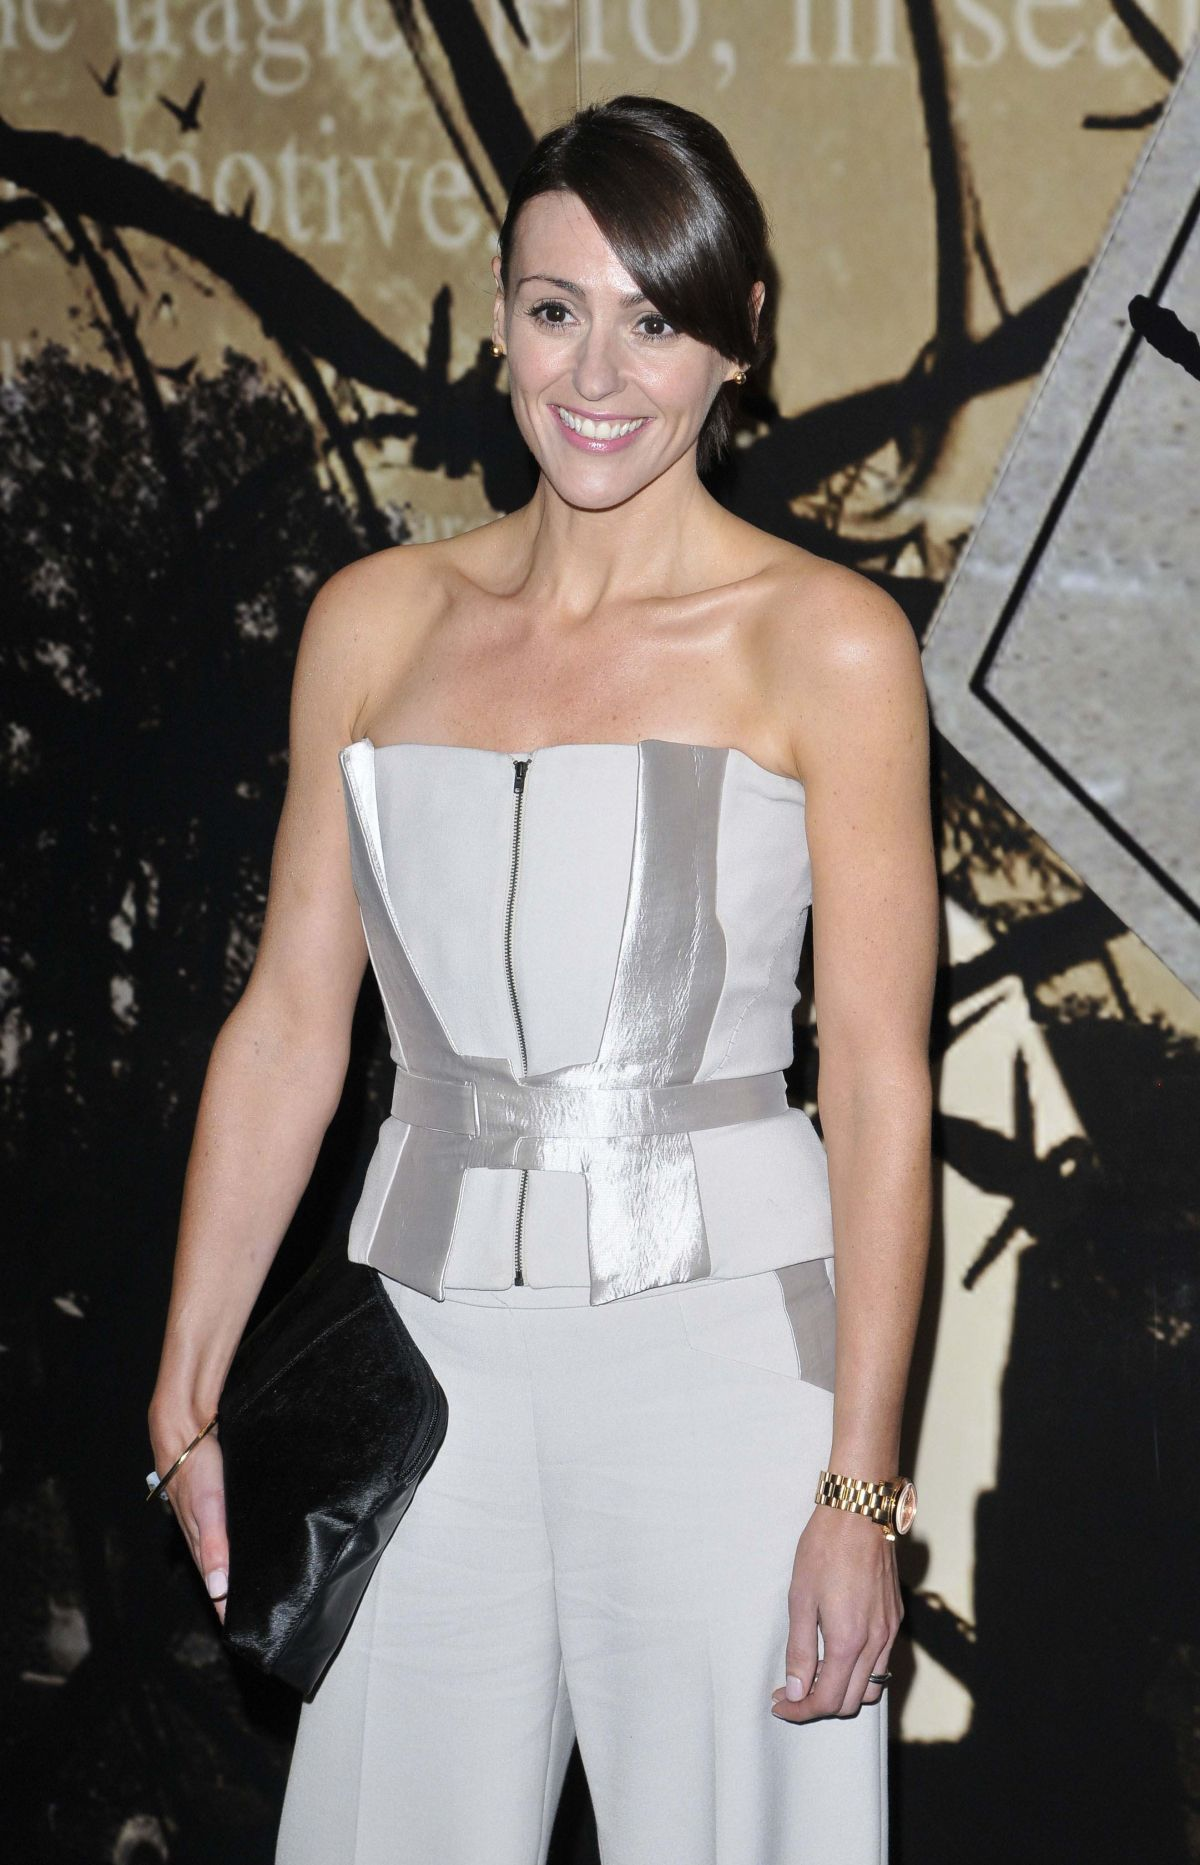 SURANNE JONES at Specsavers Crime Thriller Awards in London